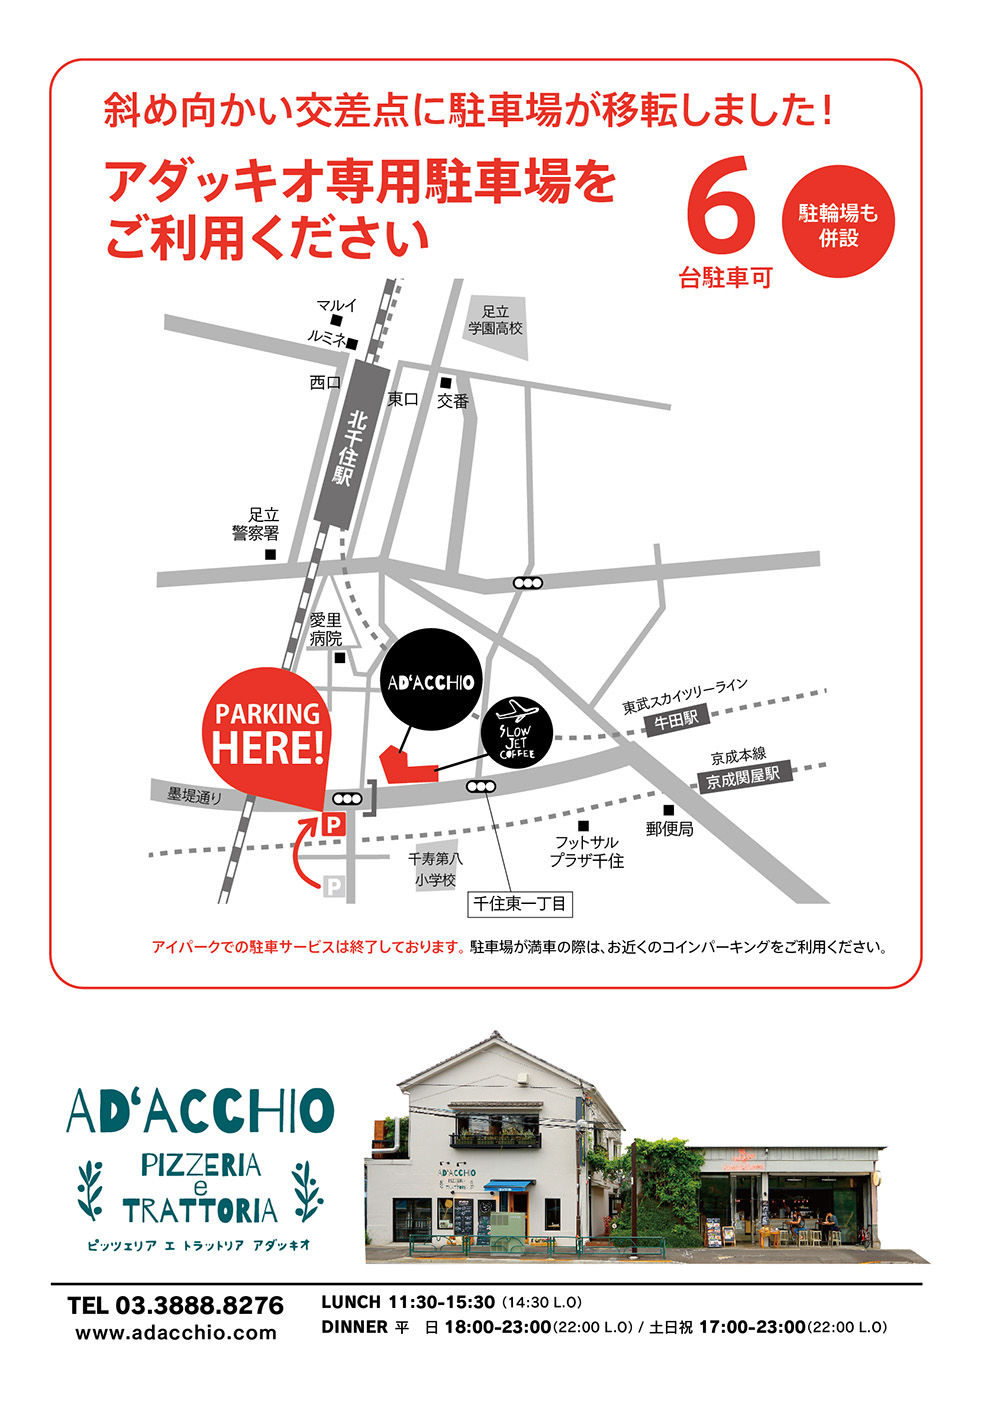 adc_181020_party_アートボード8.jpg